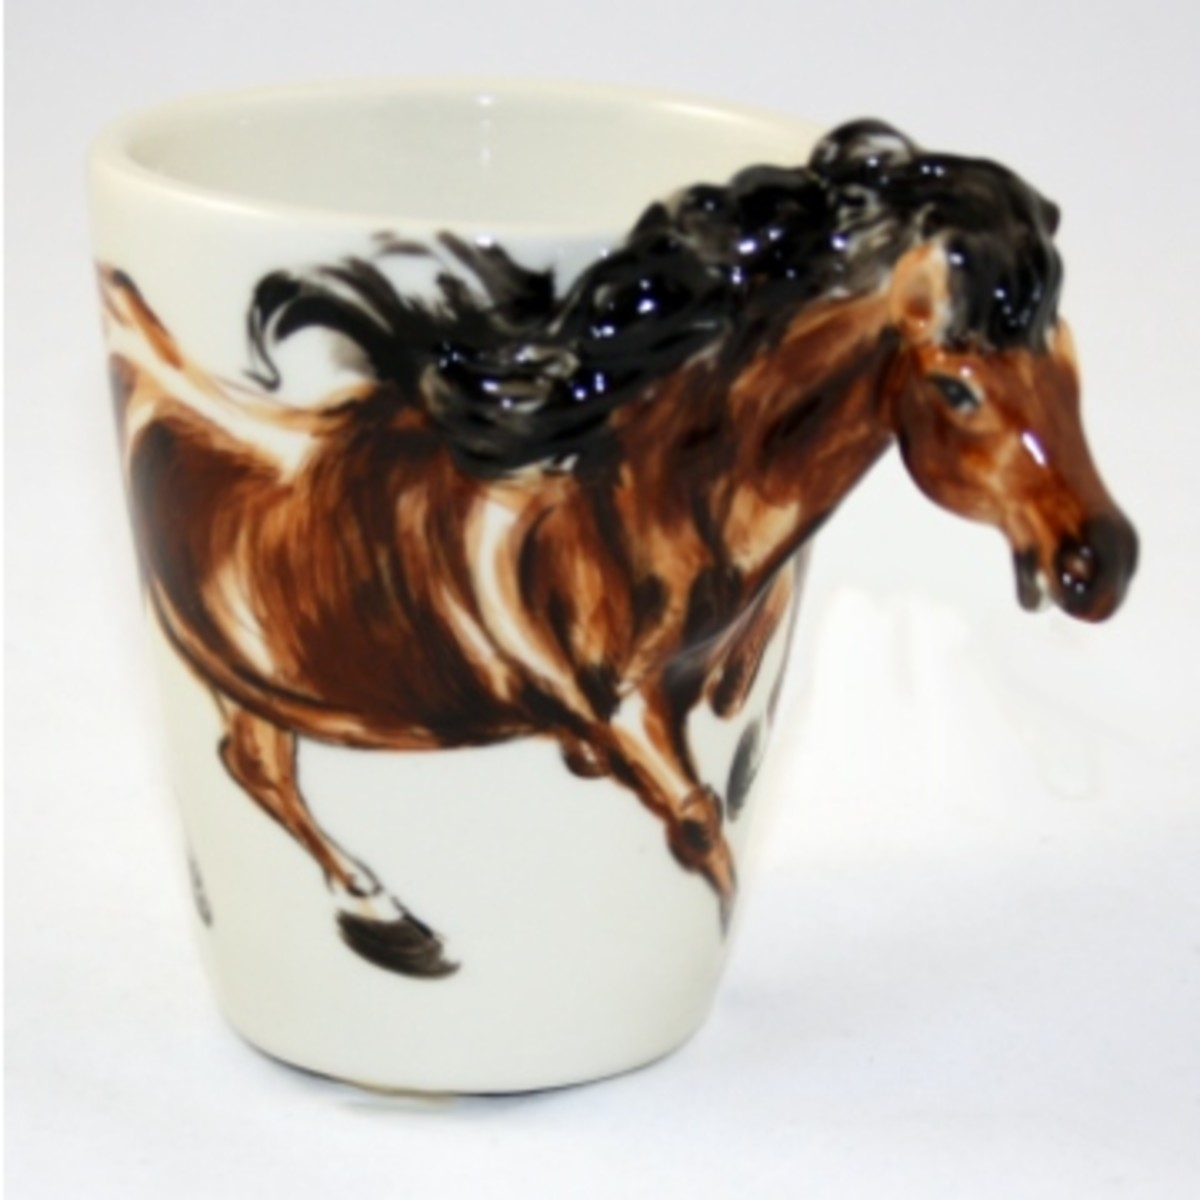 Ceramic Coffee Mug with a Horse and Flowing Black Mane